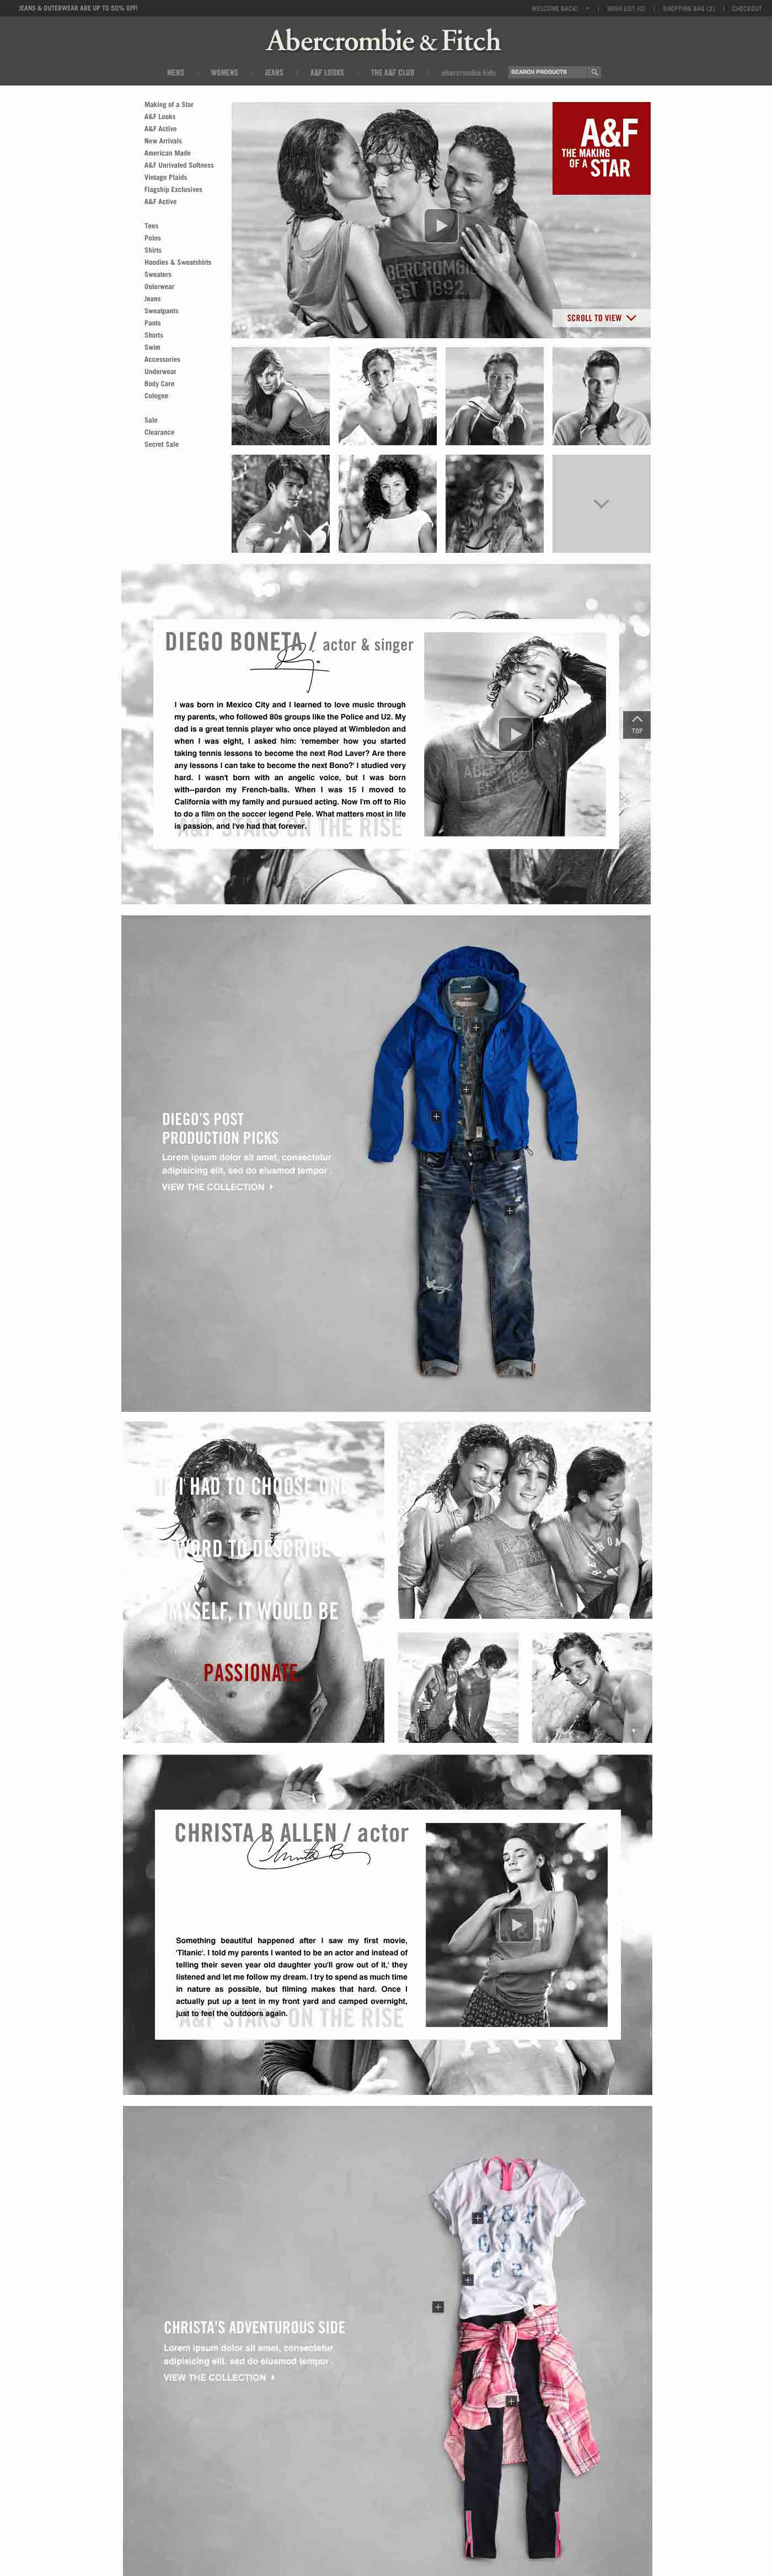 Sample of Rising Stars A&F Parallax Experience